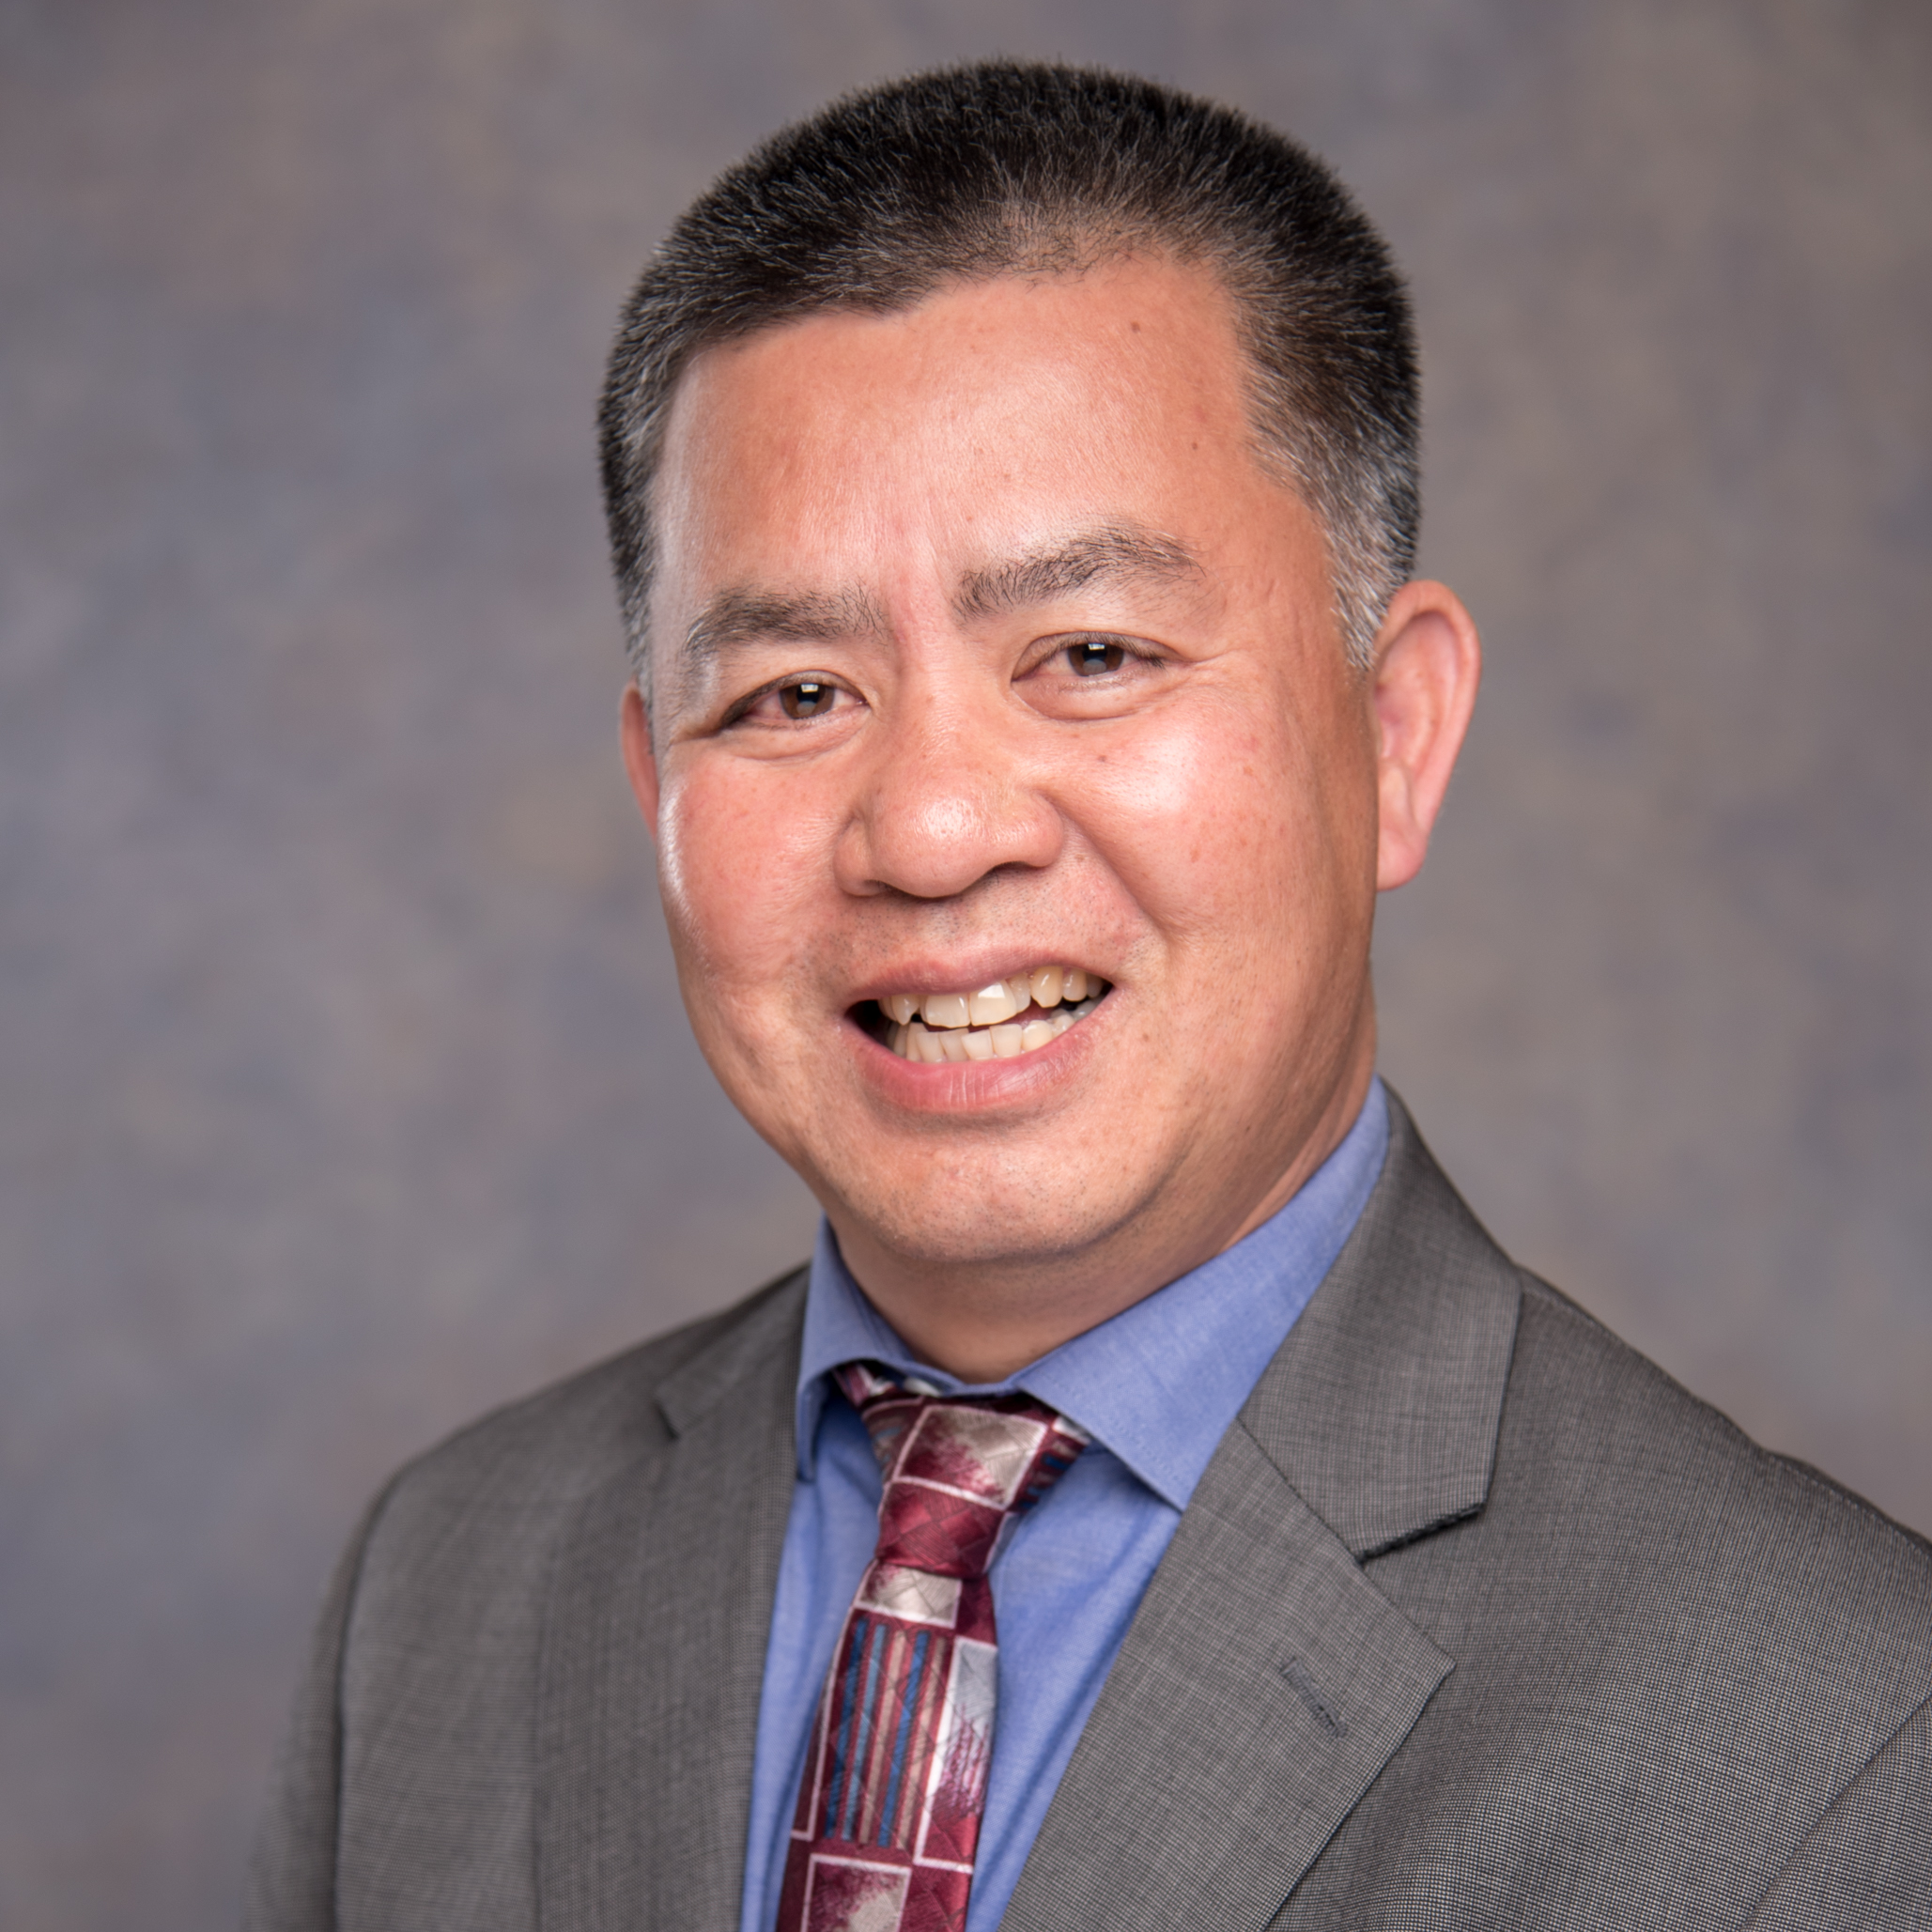 Phillip Nguyen, Executive Director of Technology, Fluor Offshore at Fluor and Stork